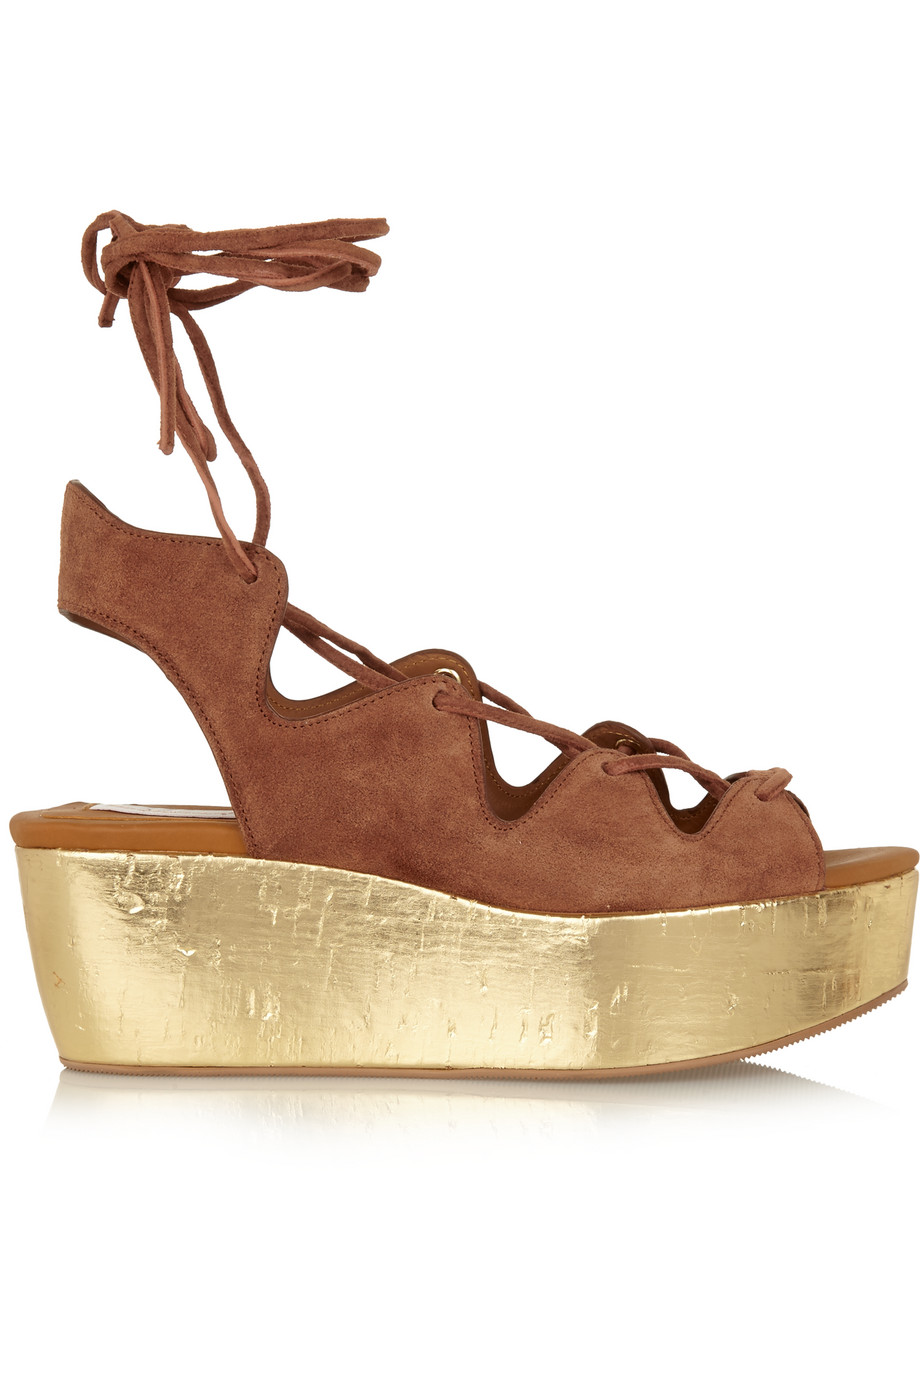 See by Chloé Liane Metallic Cork and Suede Wedge Sandals, Brown/Gold, Women's US Size: 10.5, Size: 41